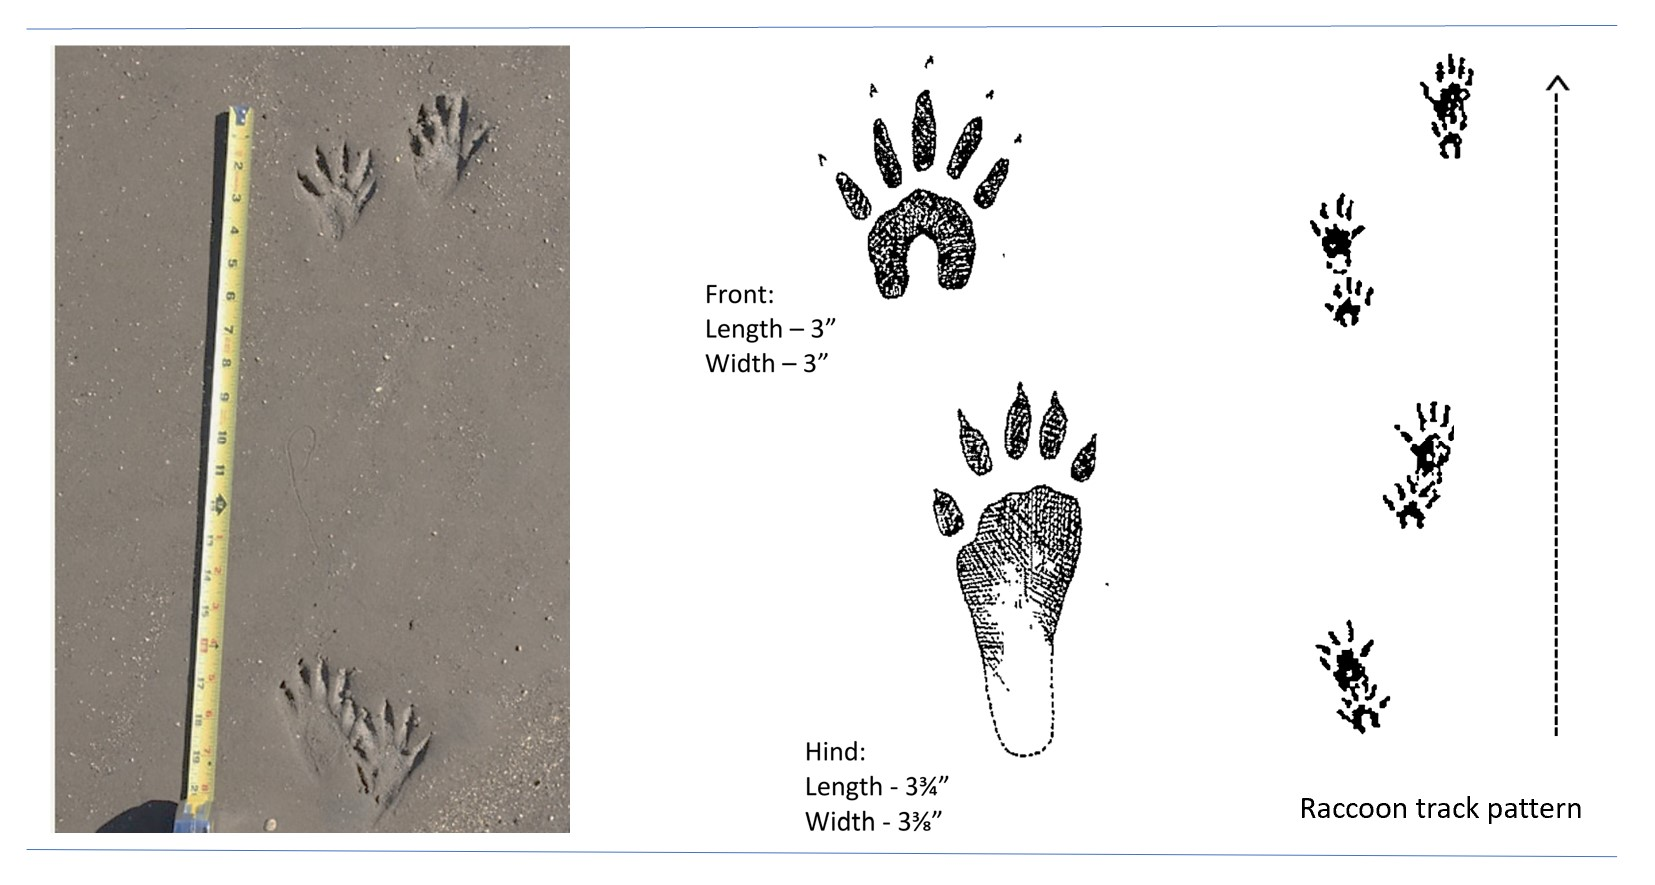 Photo and illustrated tracks of a raccoon.